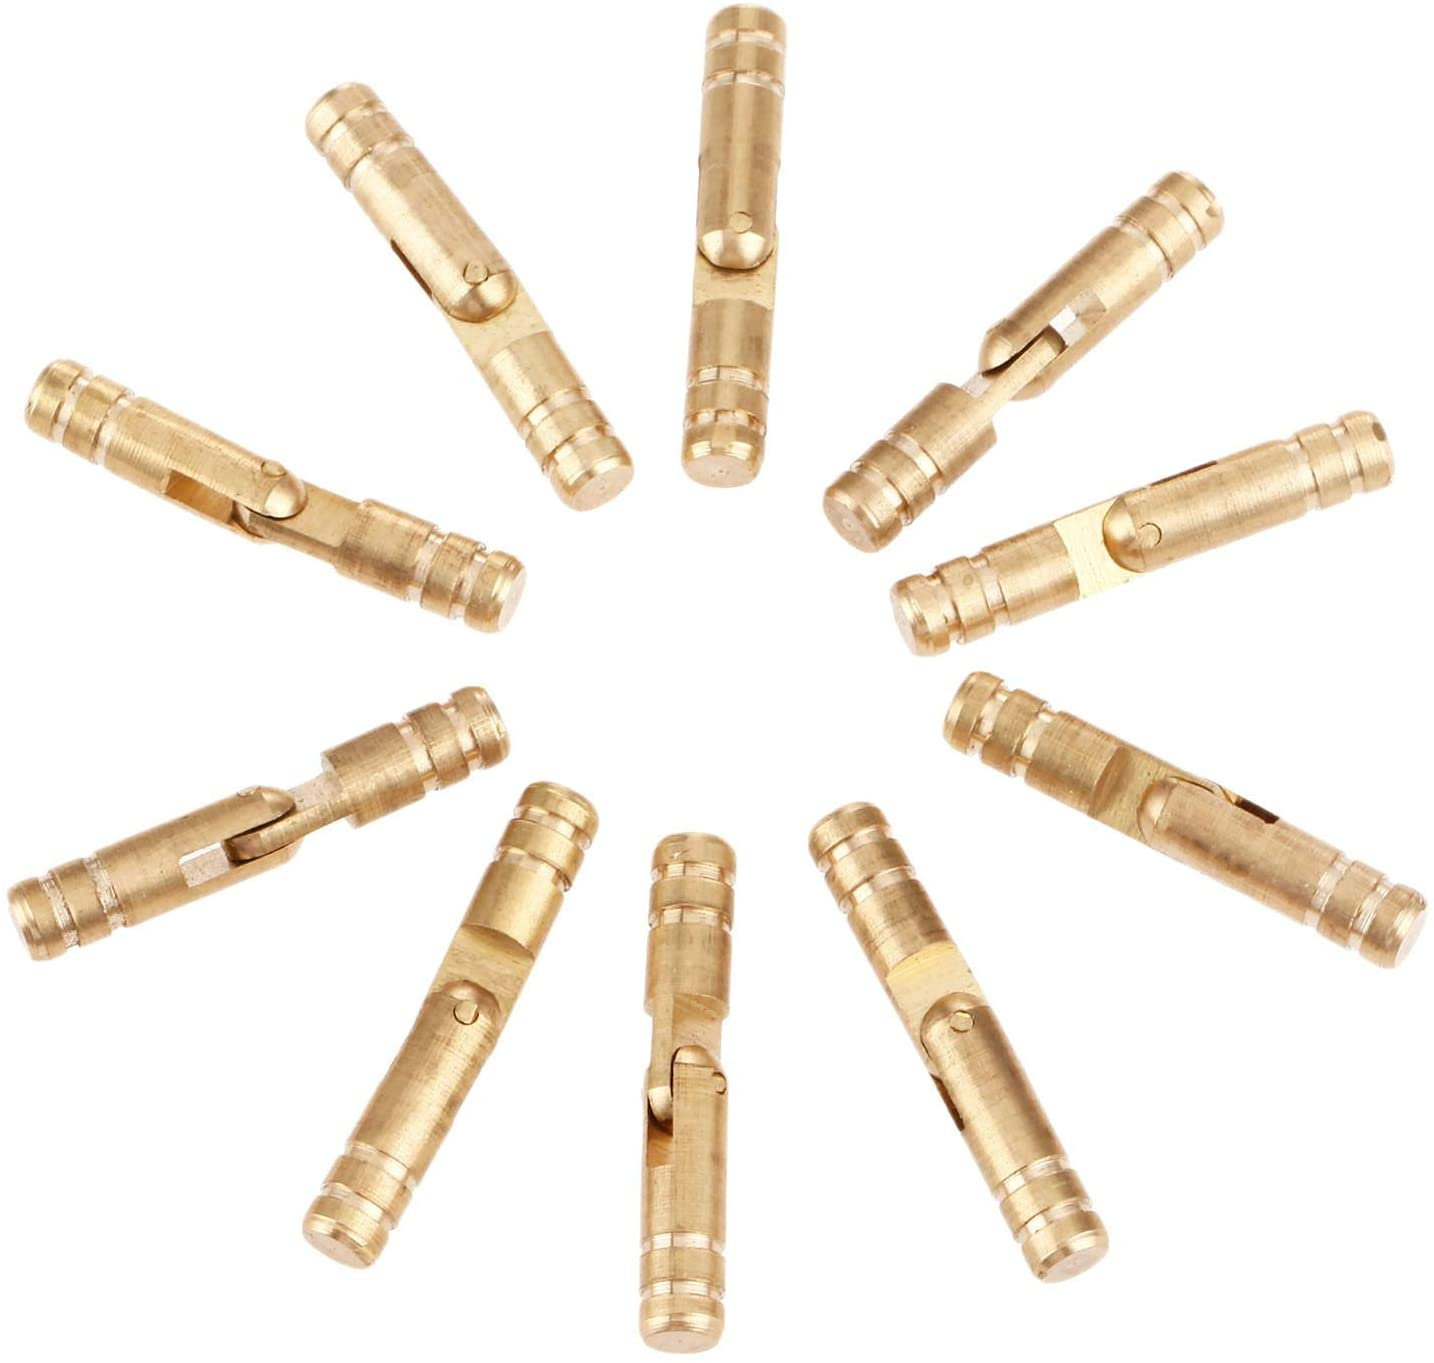 Cabinet Hinges 10Pcs 30x5mm Pure Copper Brass Conceal Hinges Jewelry Box Hidden Invisible Barrel Hinge for Furniture Finely Machined Mechanisms